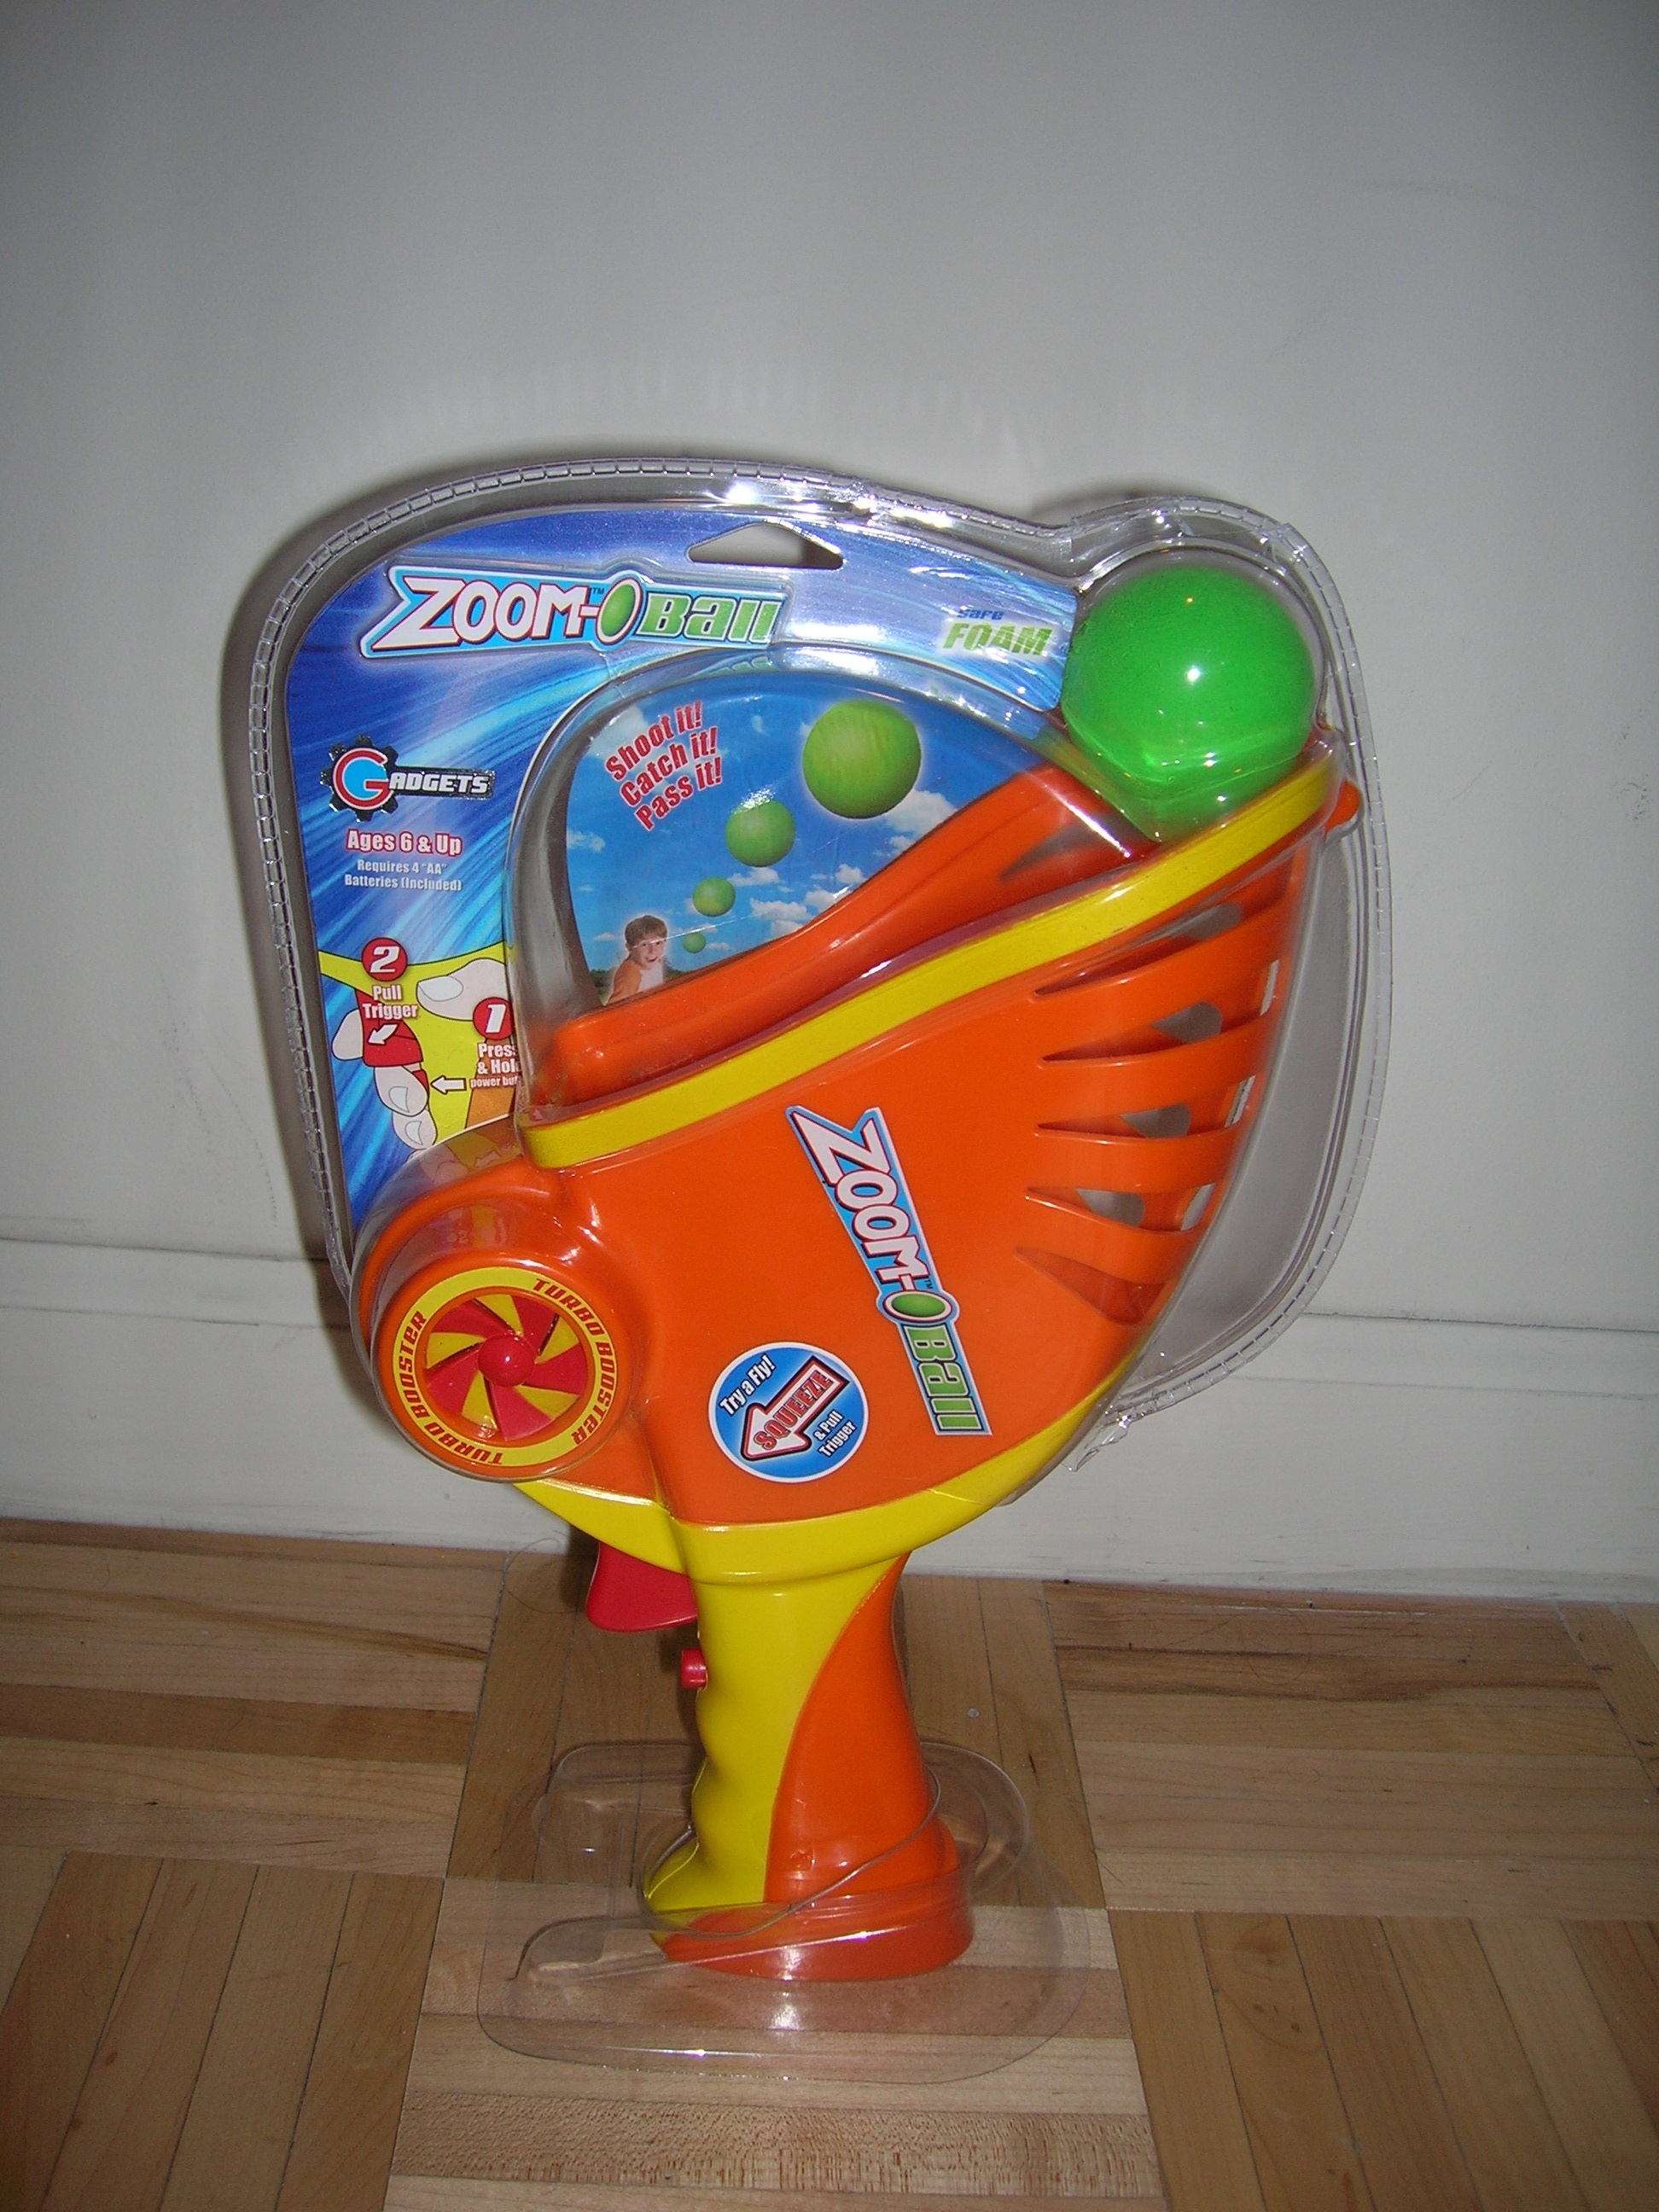 Zoom-O Ball in package